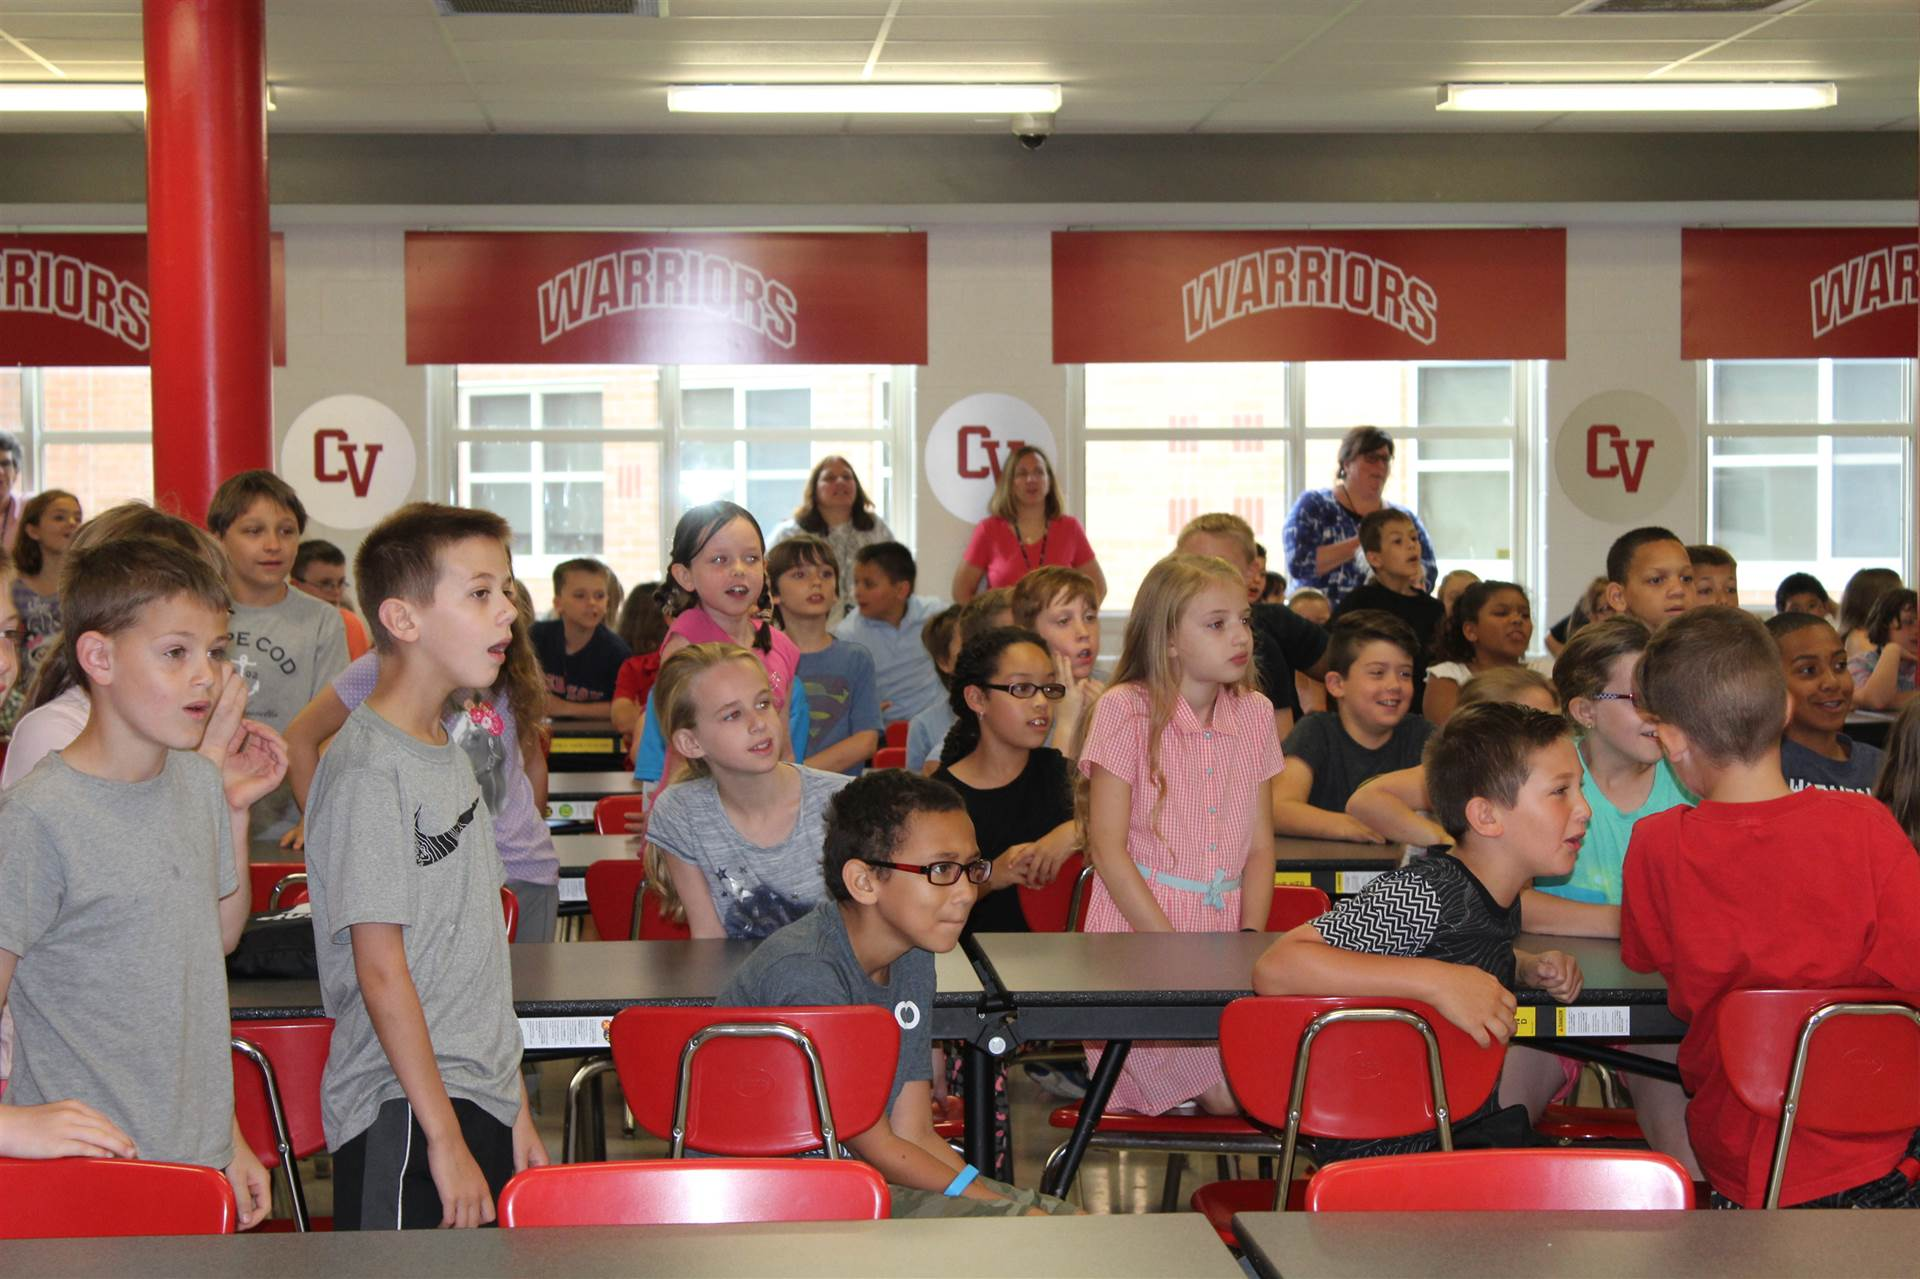 third grade students faces show suprise by monster mash reveal.